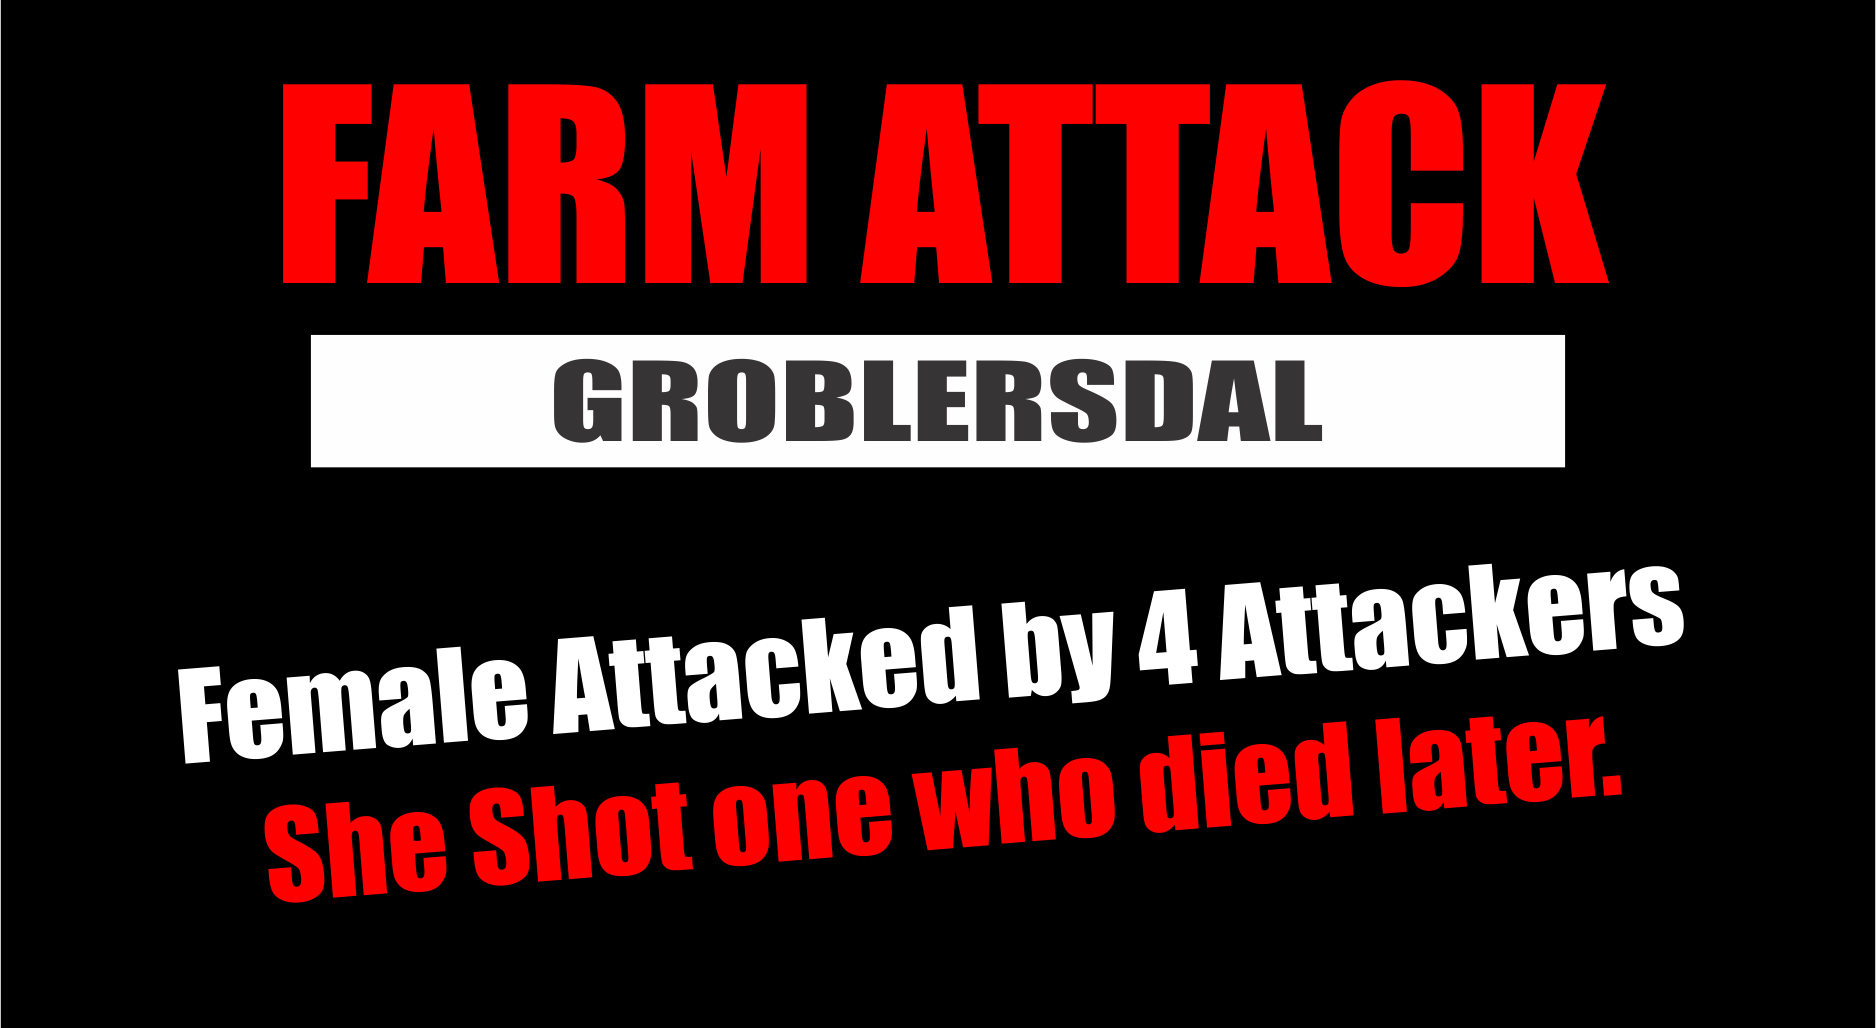 GROBLERSDAL FARM ATTACK: Female Farmer Attacked by 4 Men, Shot one who later Died